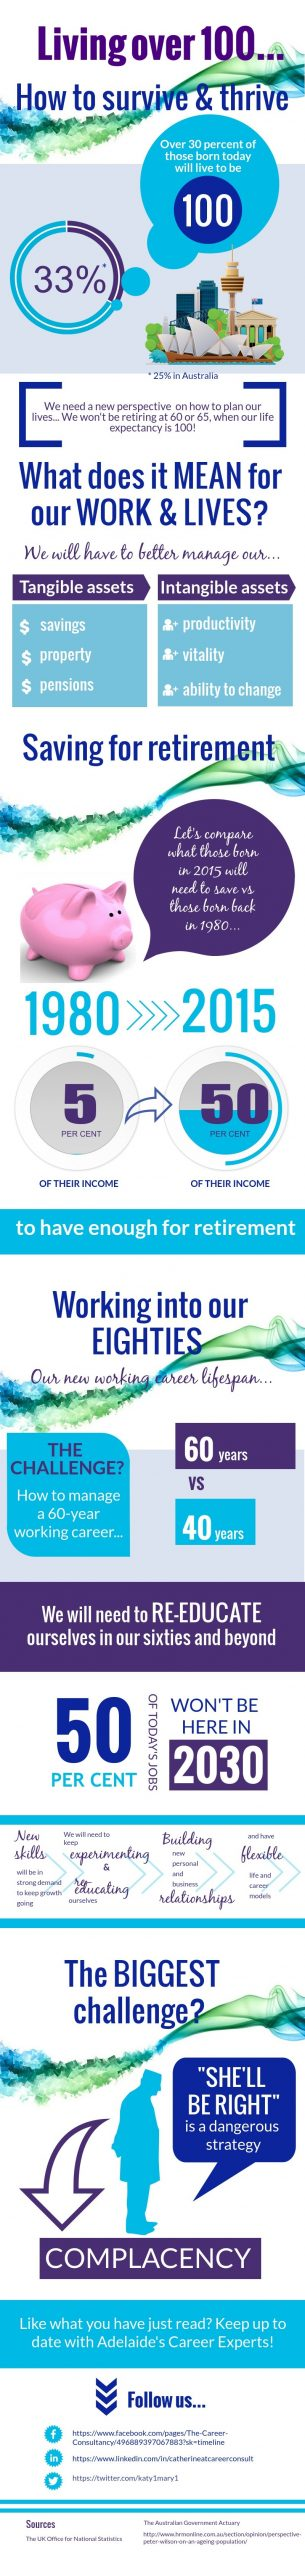 Infographic outlining the challenges of thriving into old age